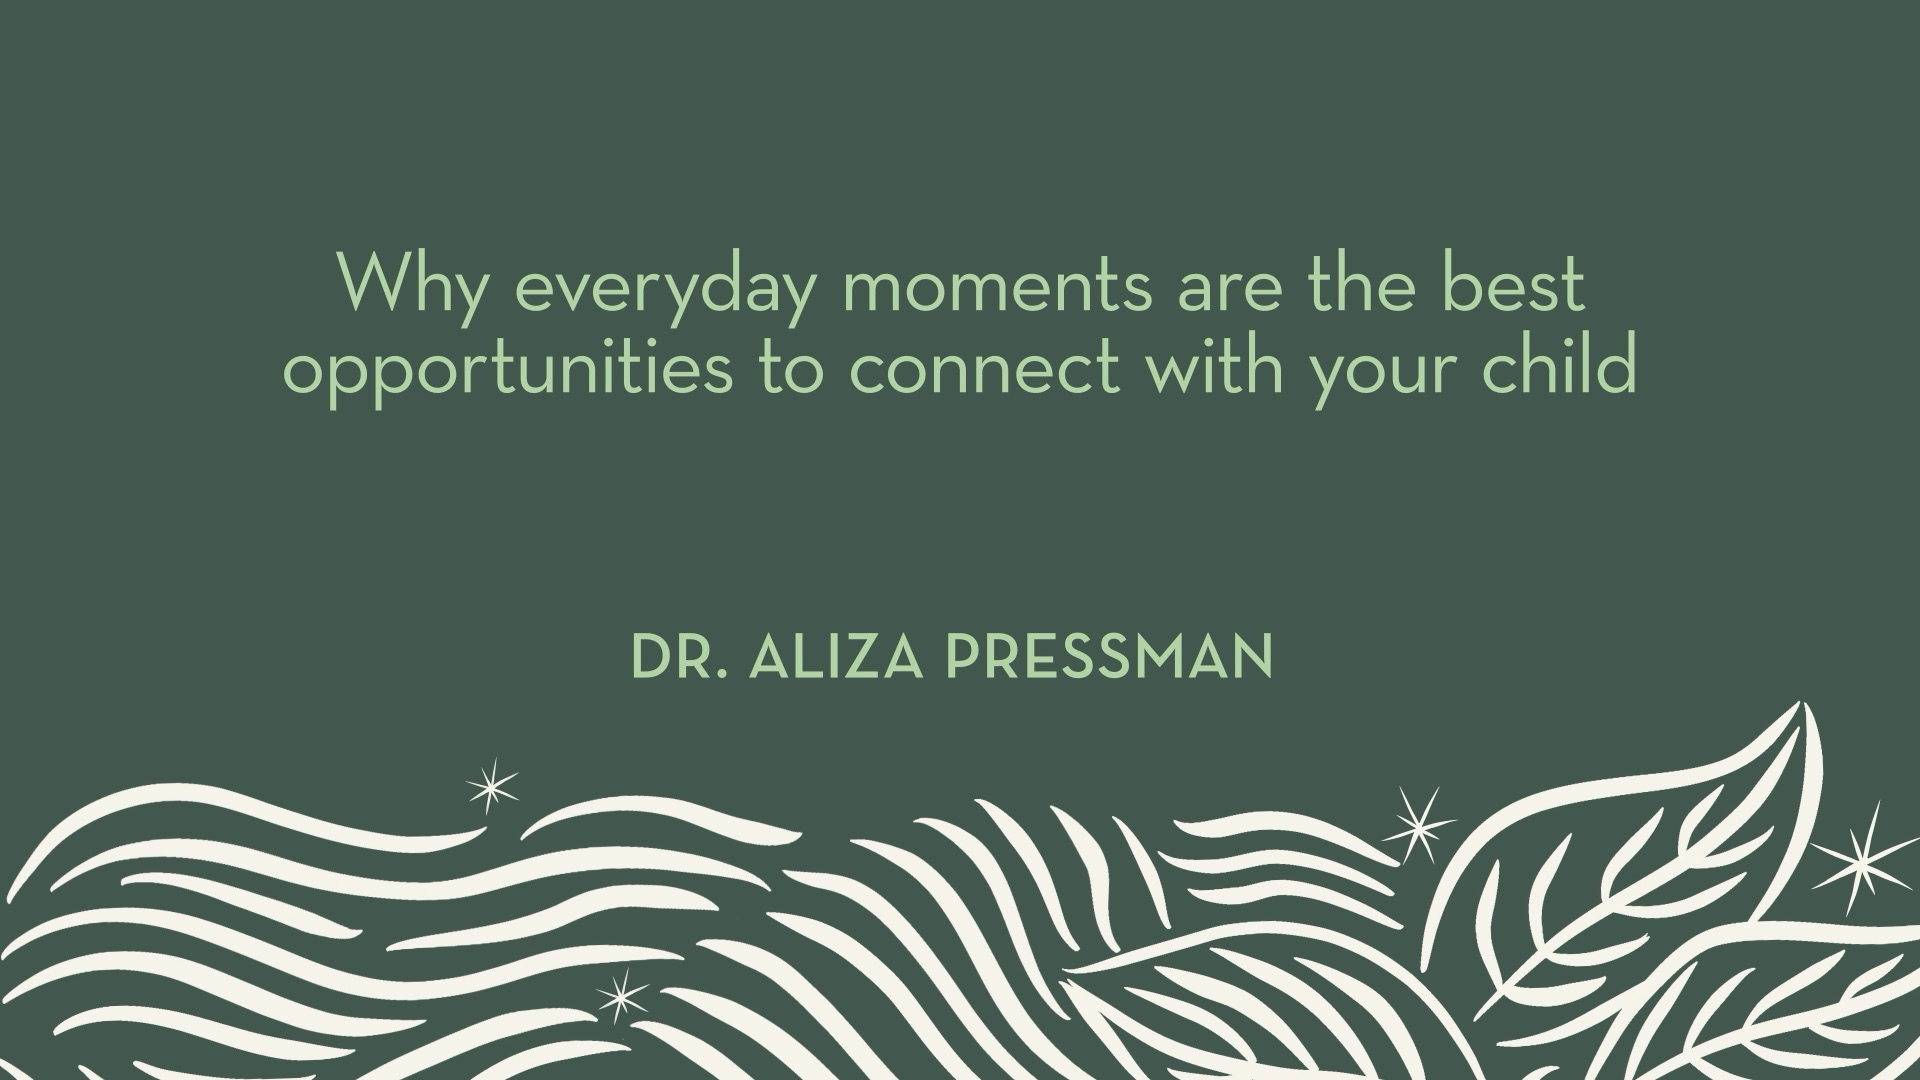 Dr. Pressman | Why everyday moments are the best opportunities to connect with your child